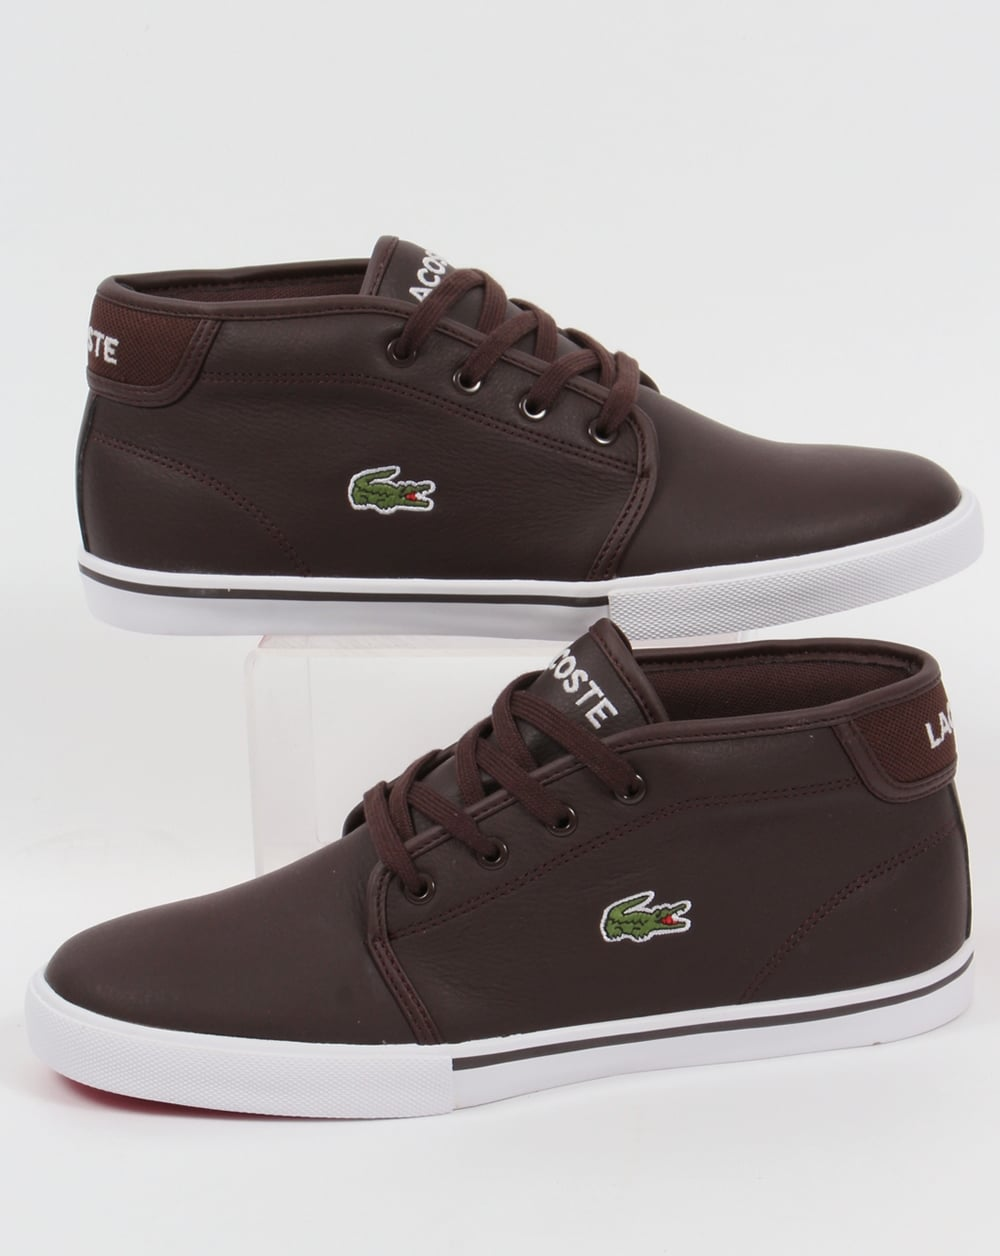 161b68131b30 Lacoste Lacoste Ampthill Leather Trainers Dark Brown